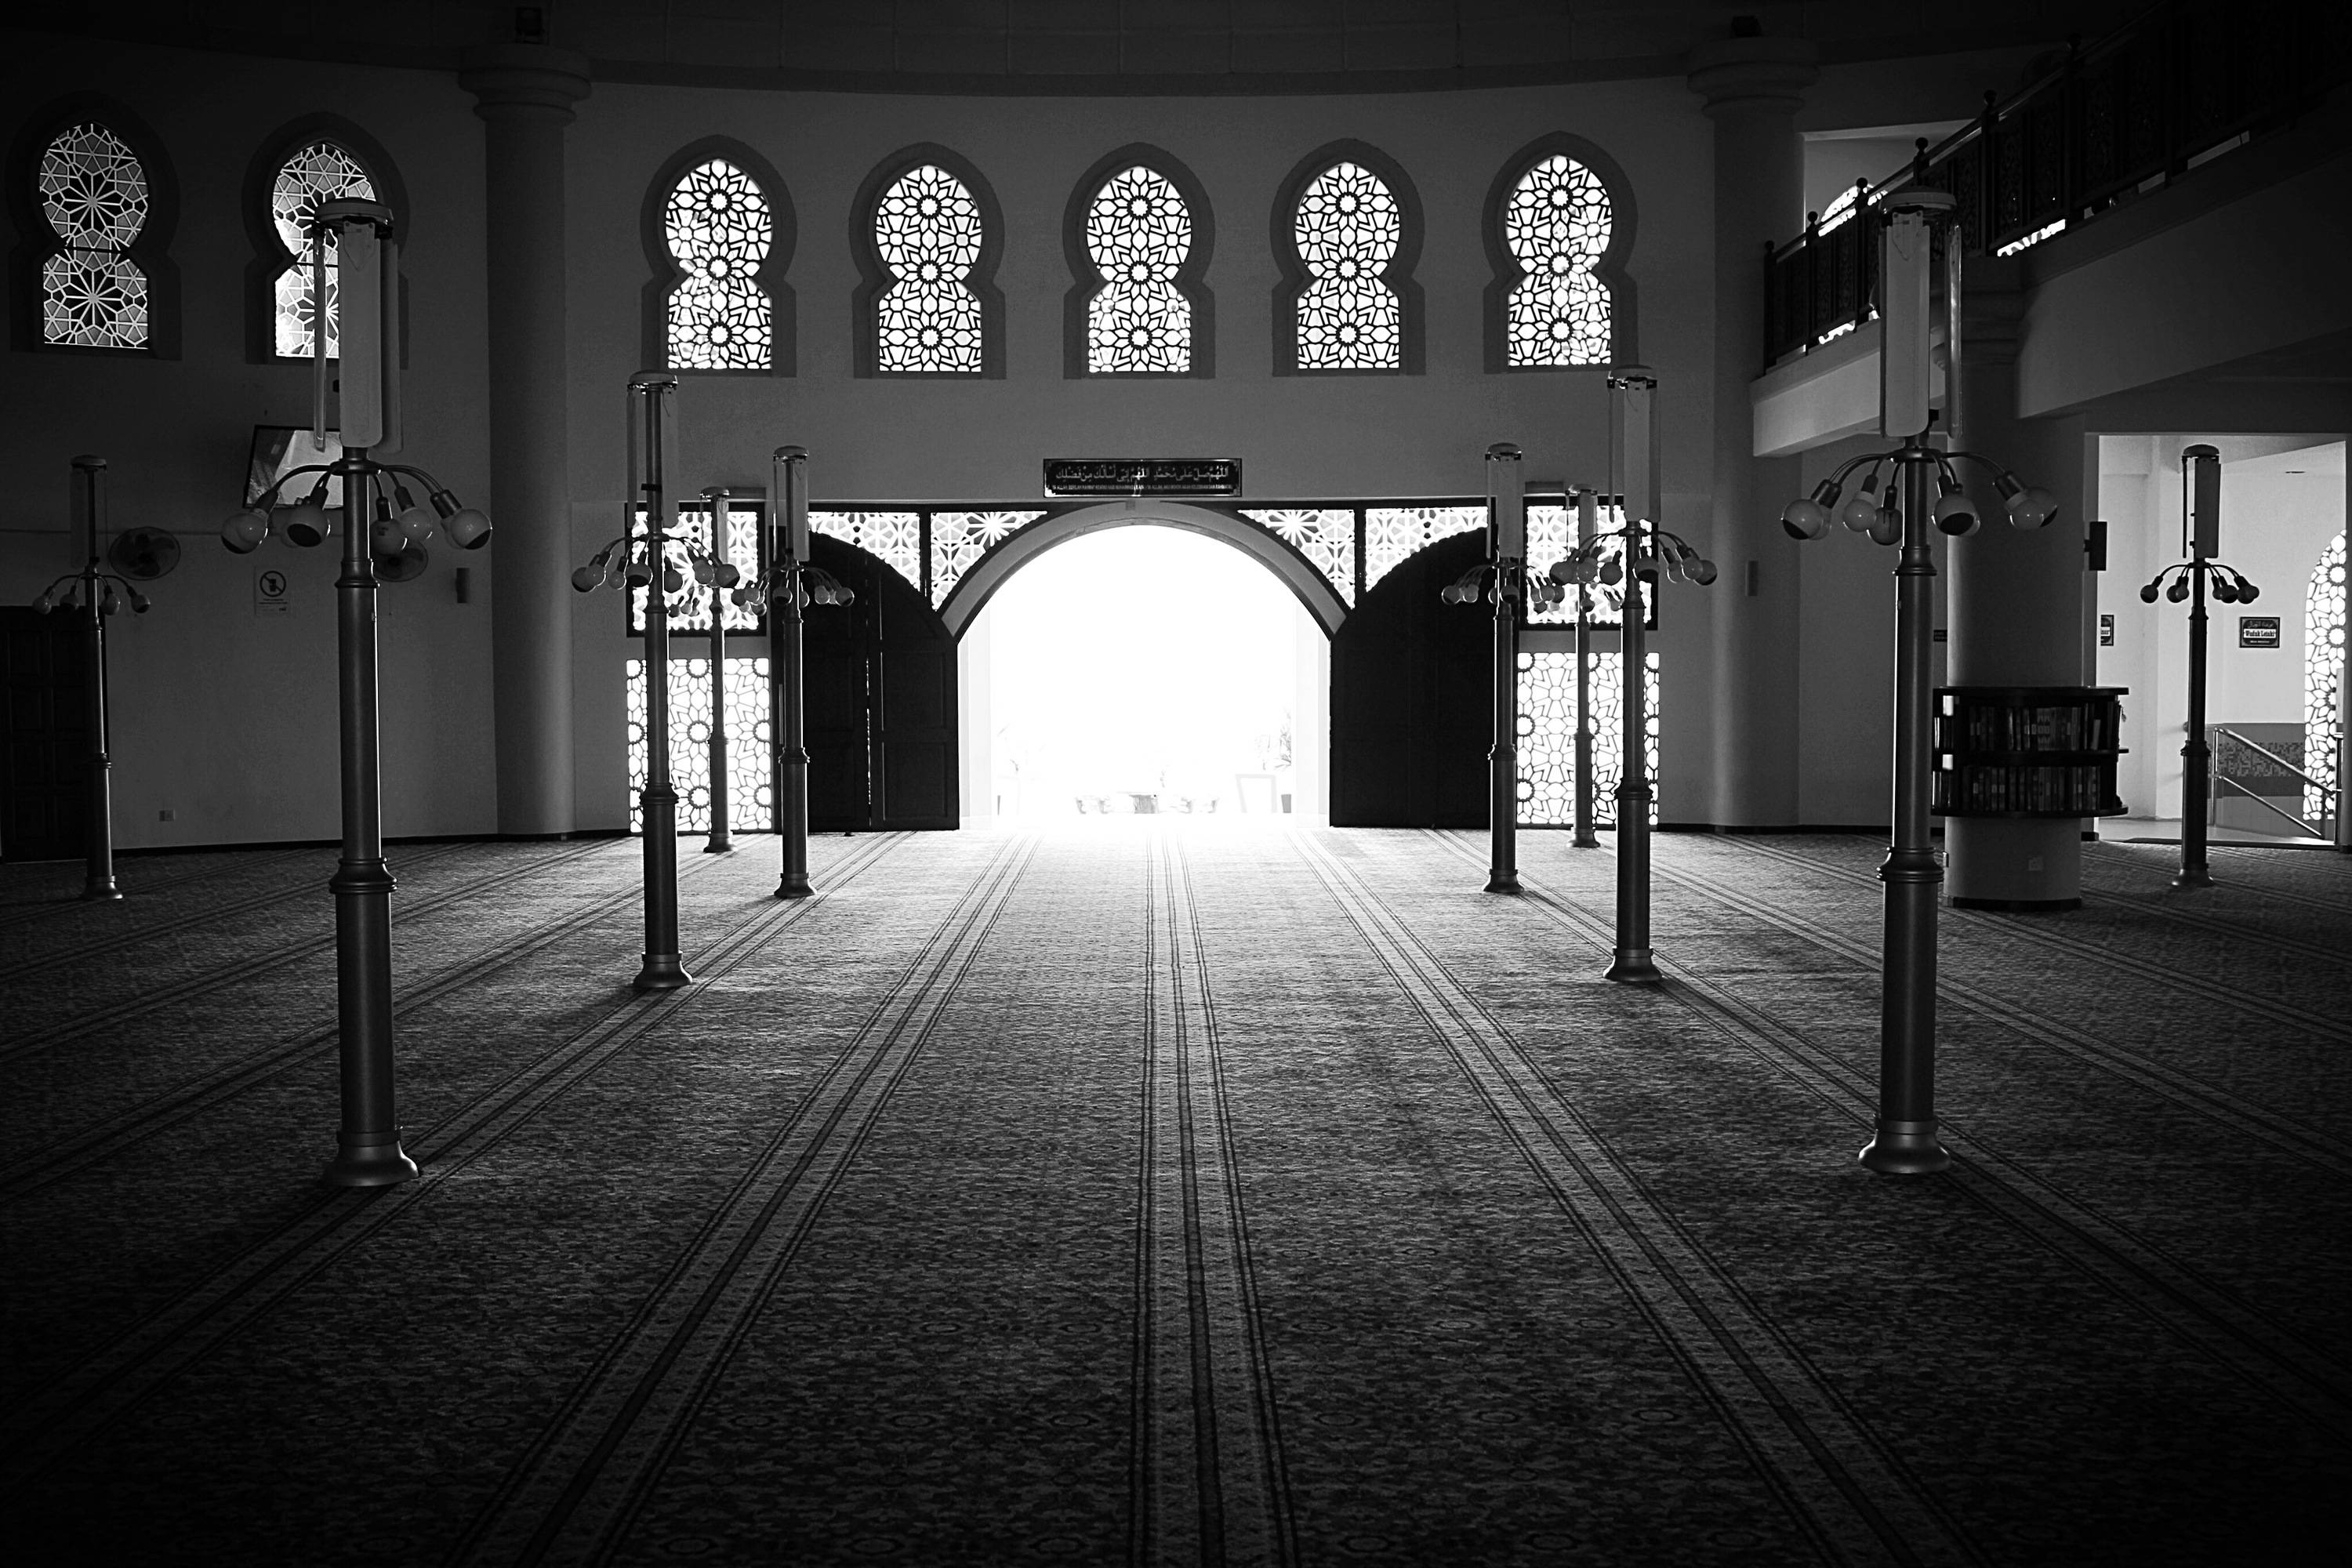 Isn't it sad if someday, they have no interest to come to the mosque anymore, despite the wide-opened door?